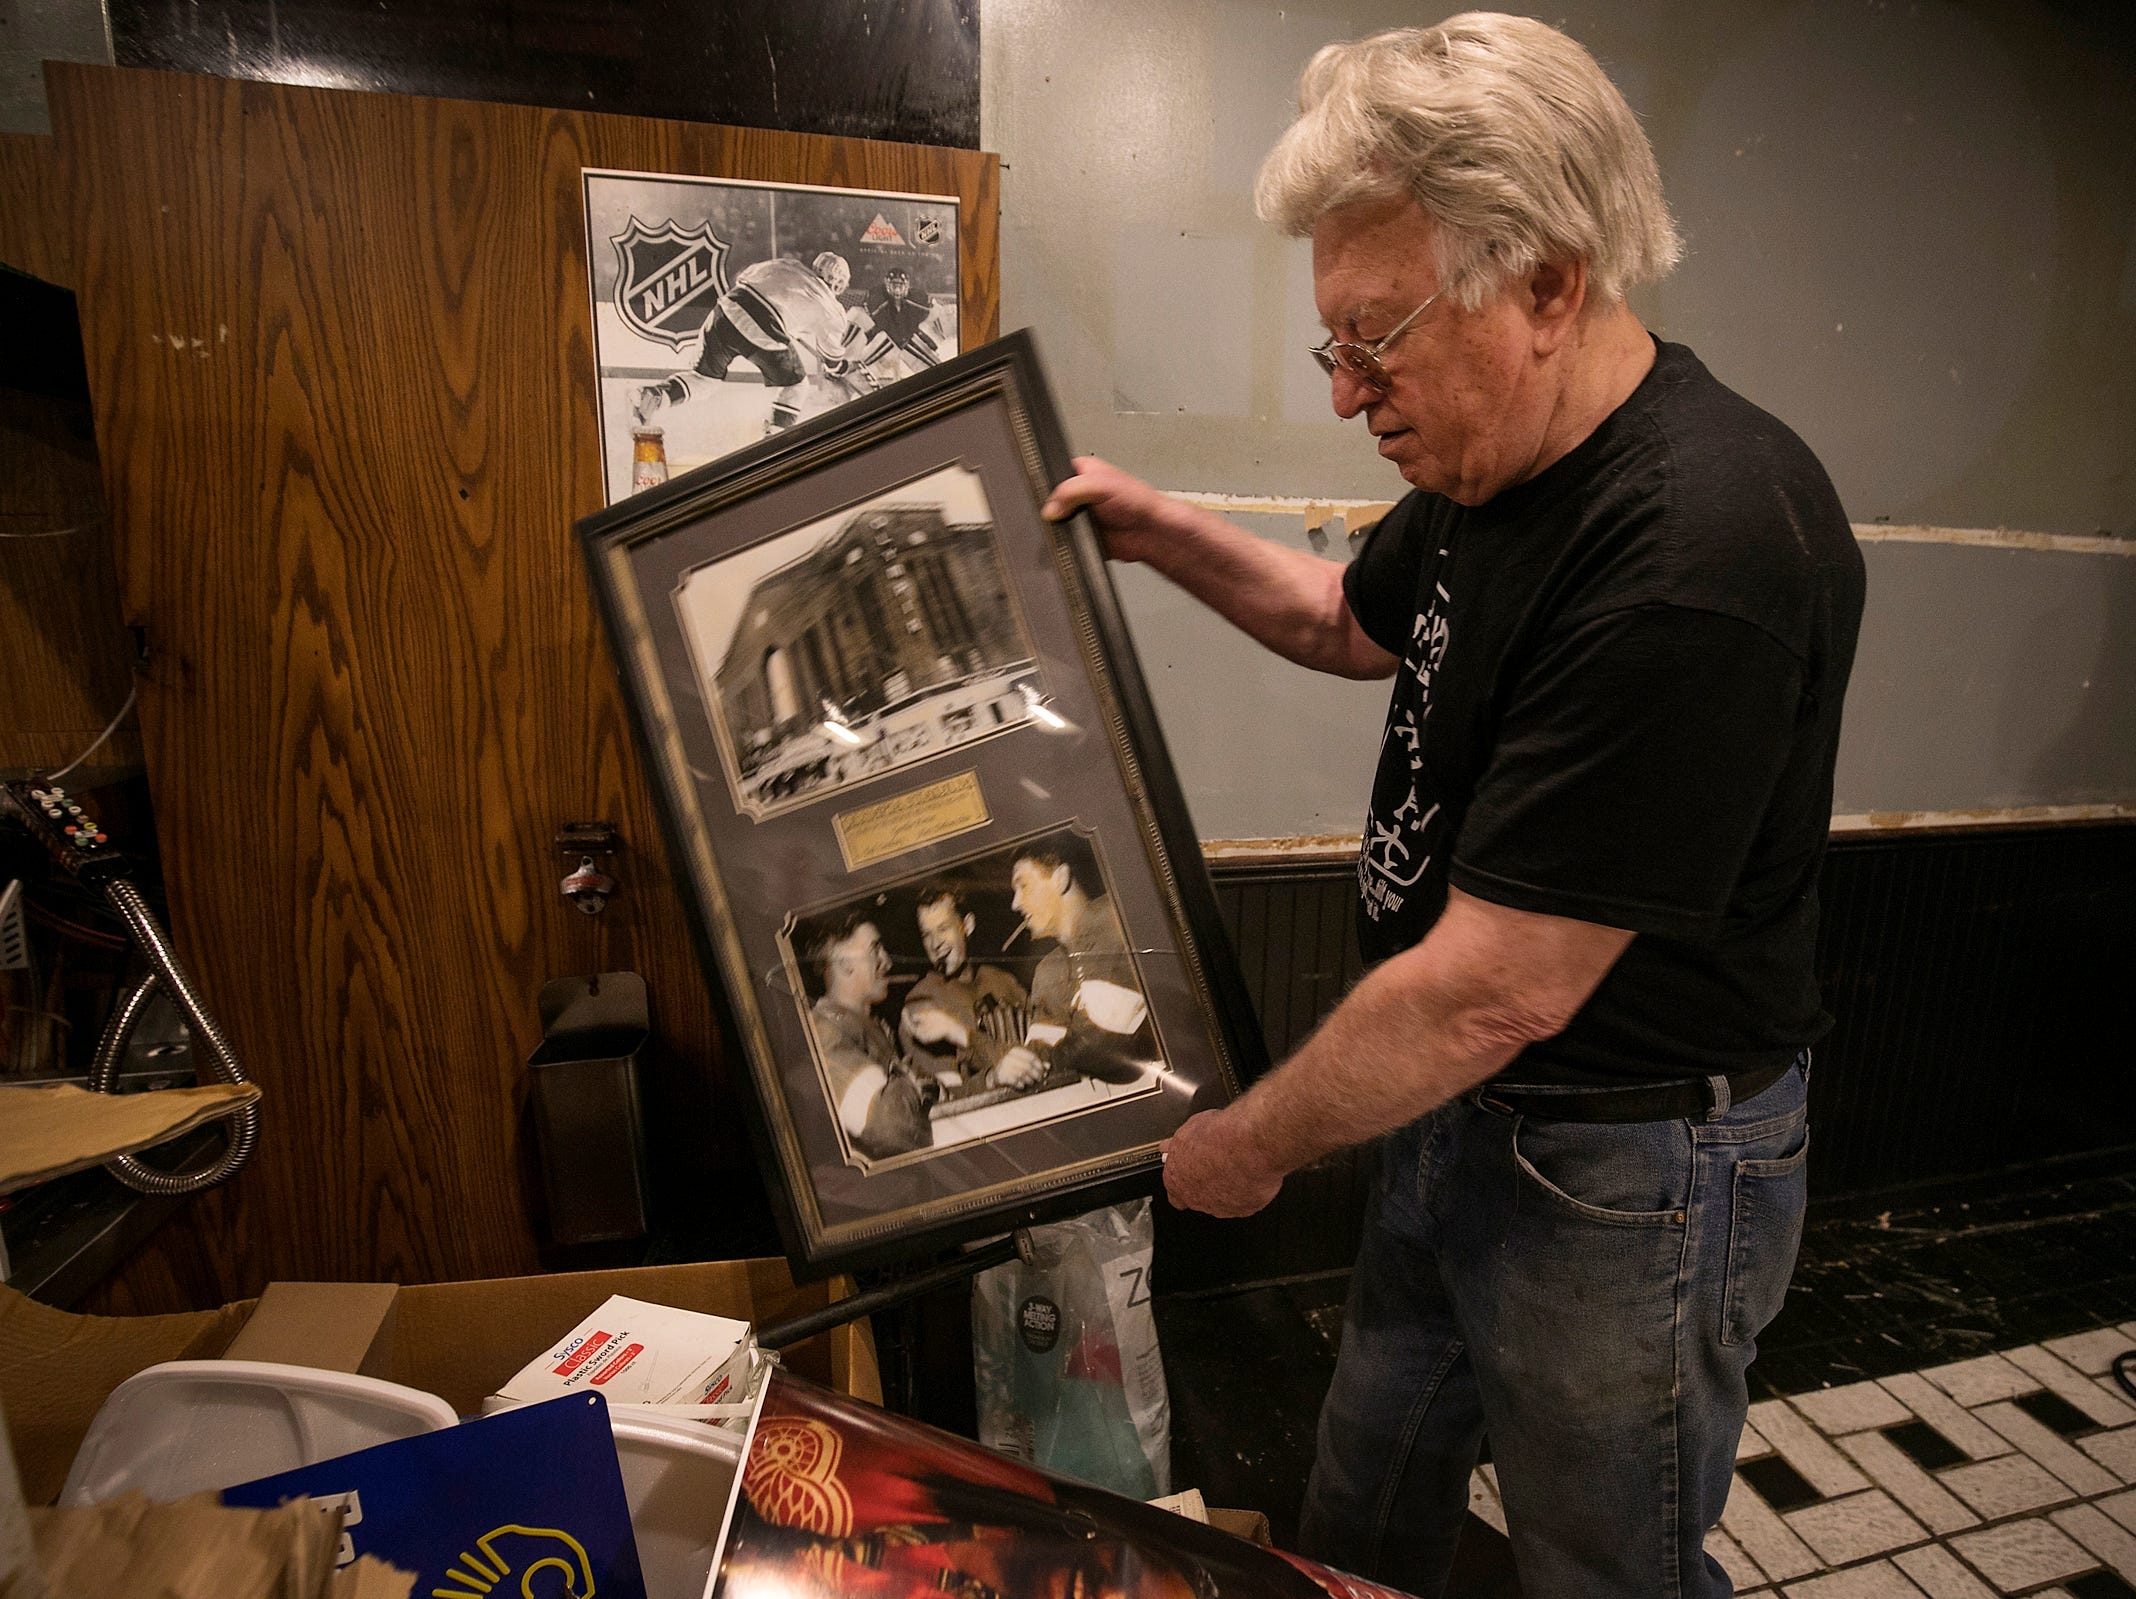 Cobo Joe's co-owner Richard Cadreau, 71, packs up memorabilia before closing the doors of the Detroit sports bar on Tuesday, July 31, 2018.